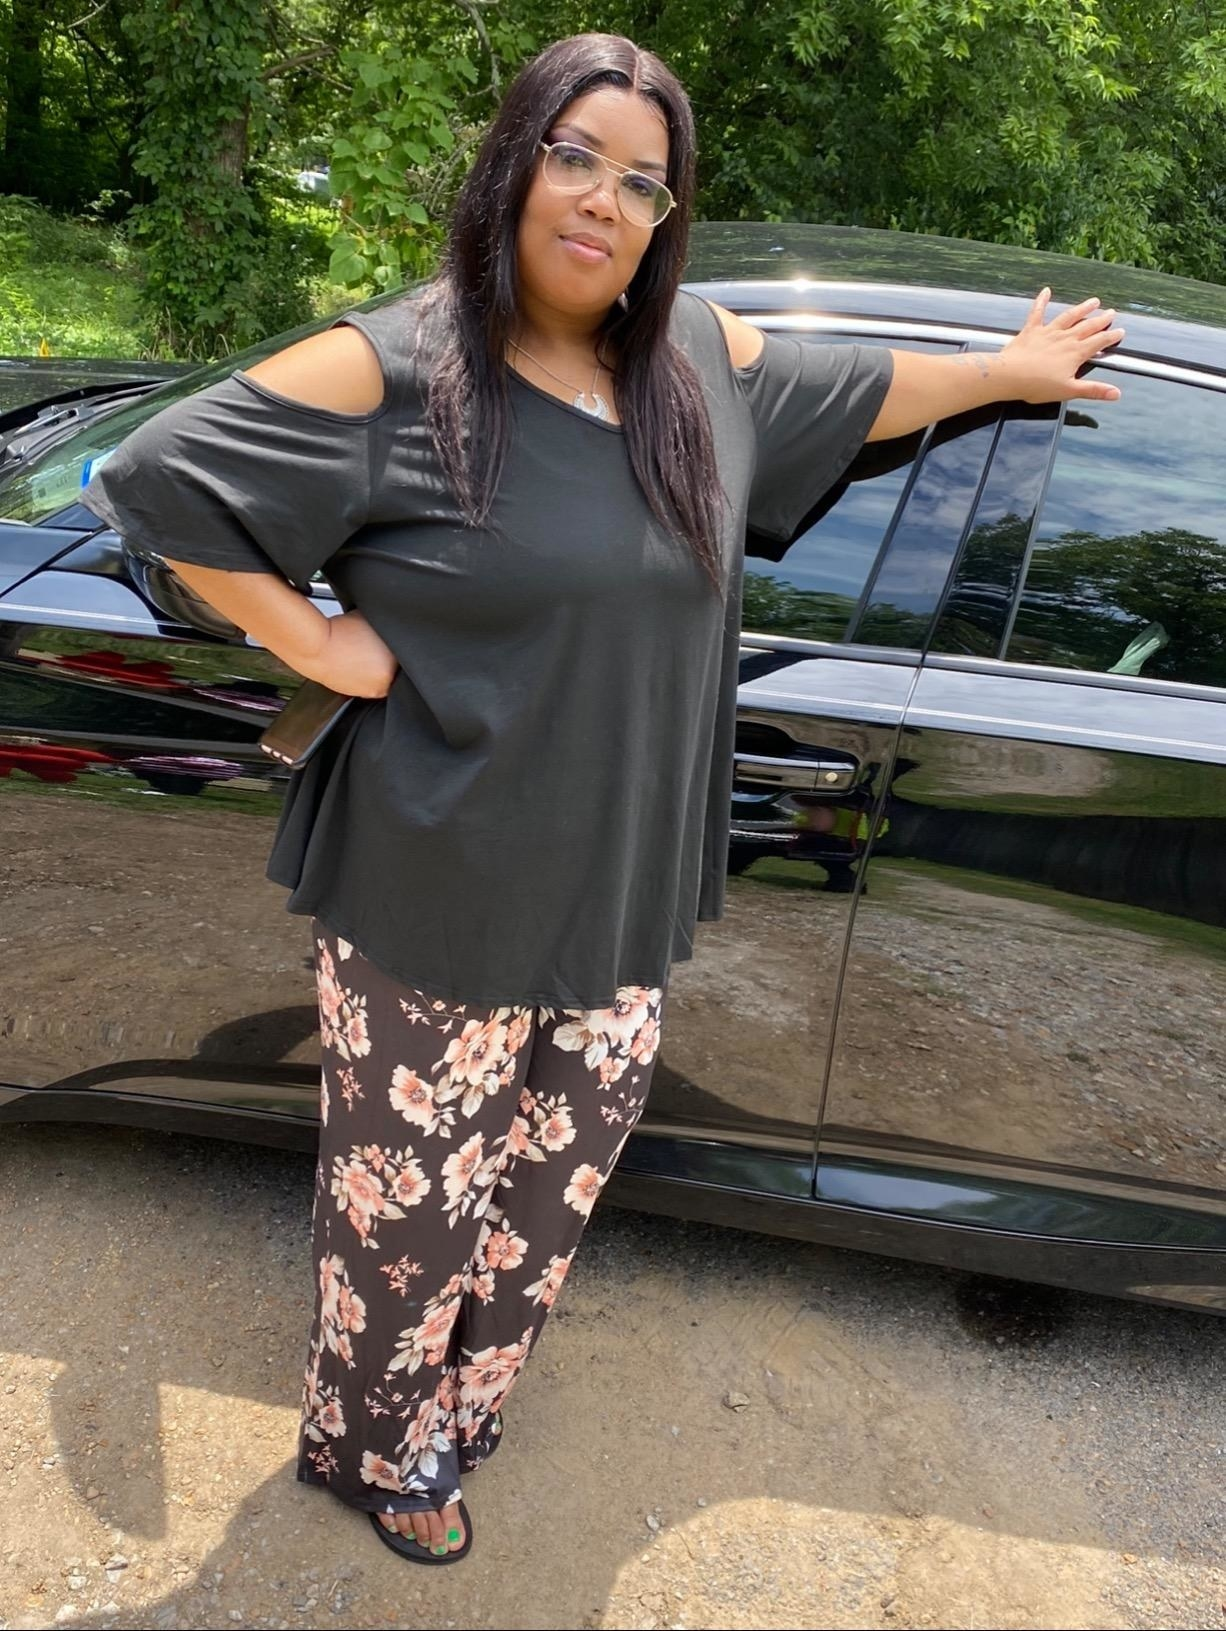 a plus size reviewer wearing the black allegrace cold shoulder top with floral plants